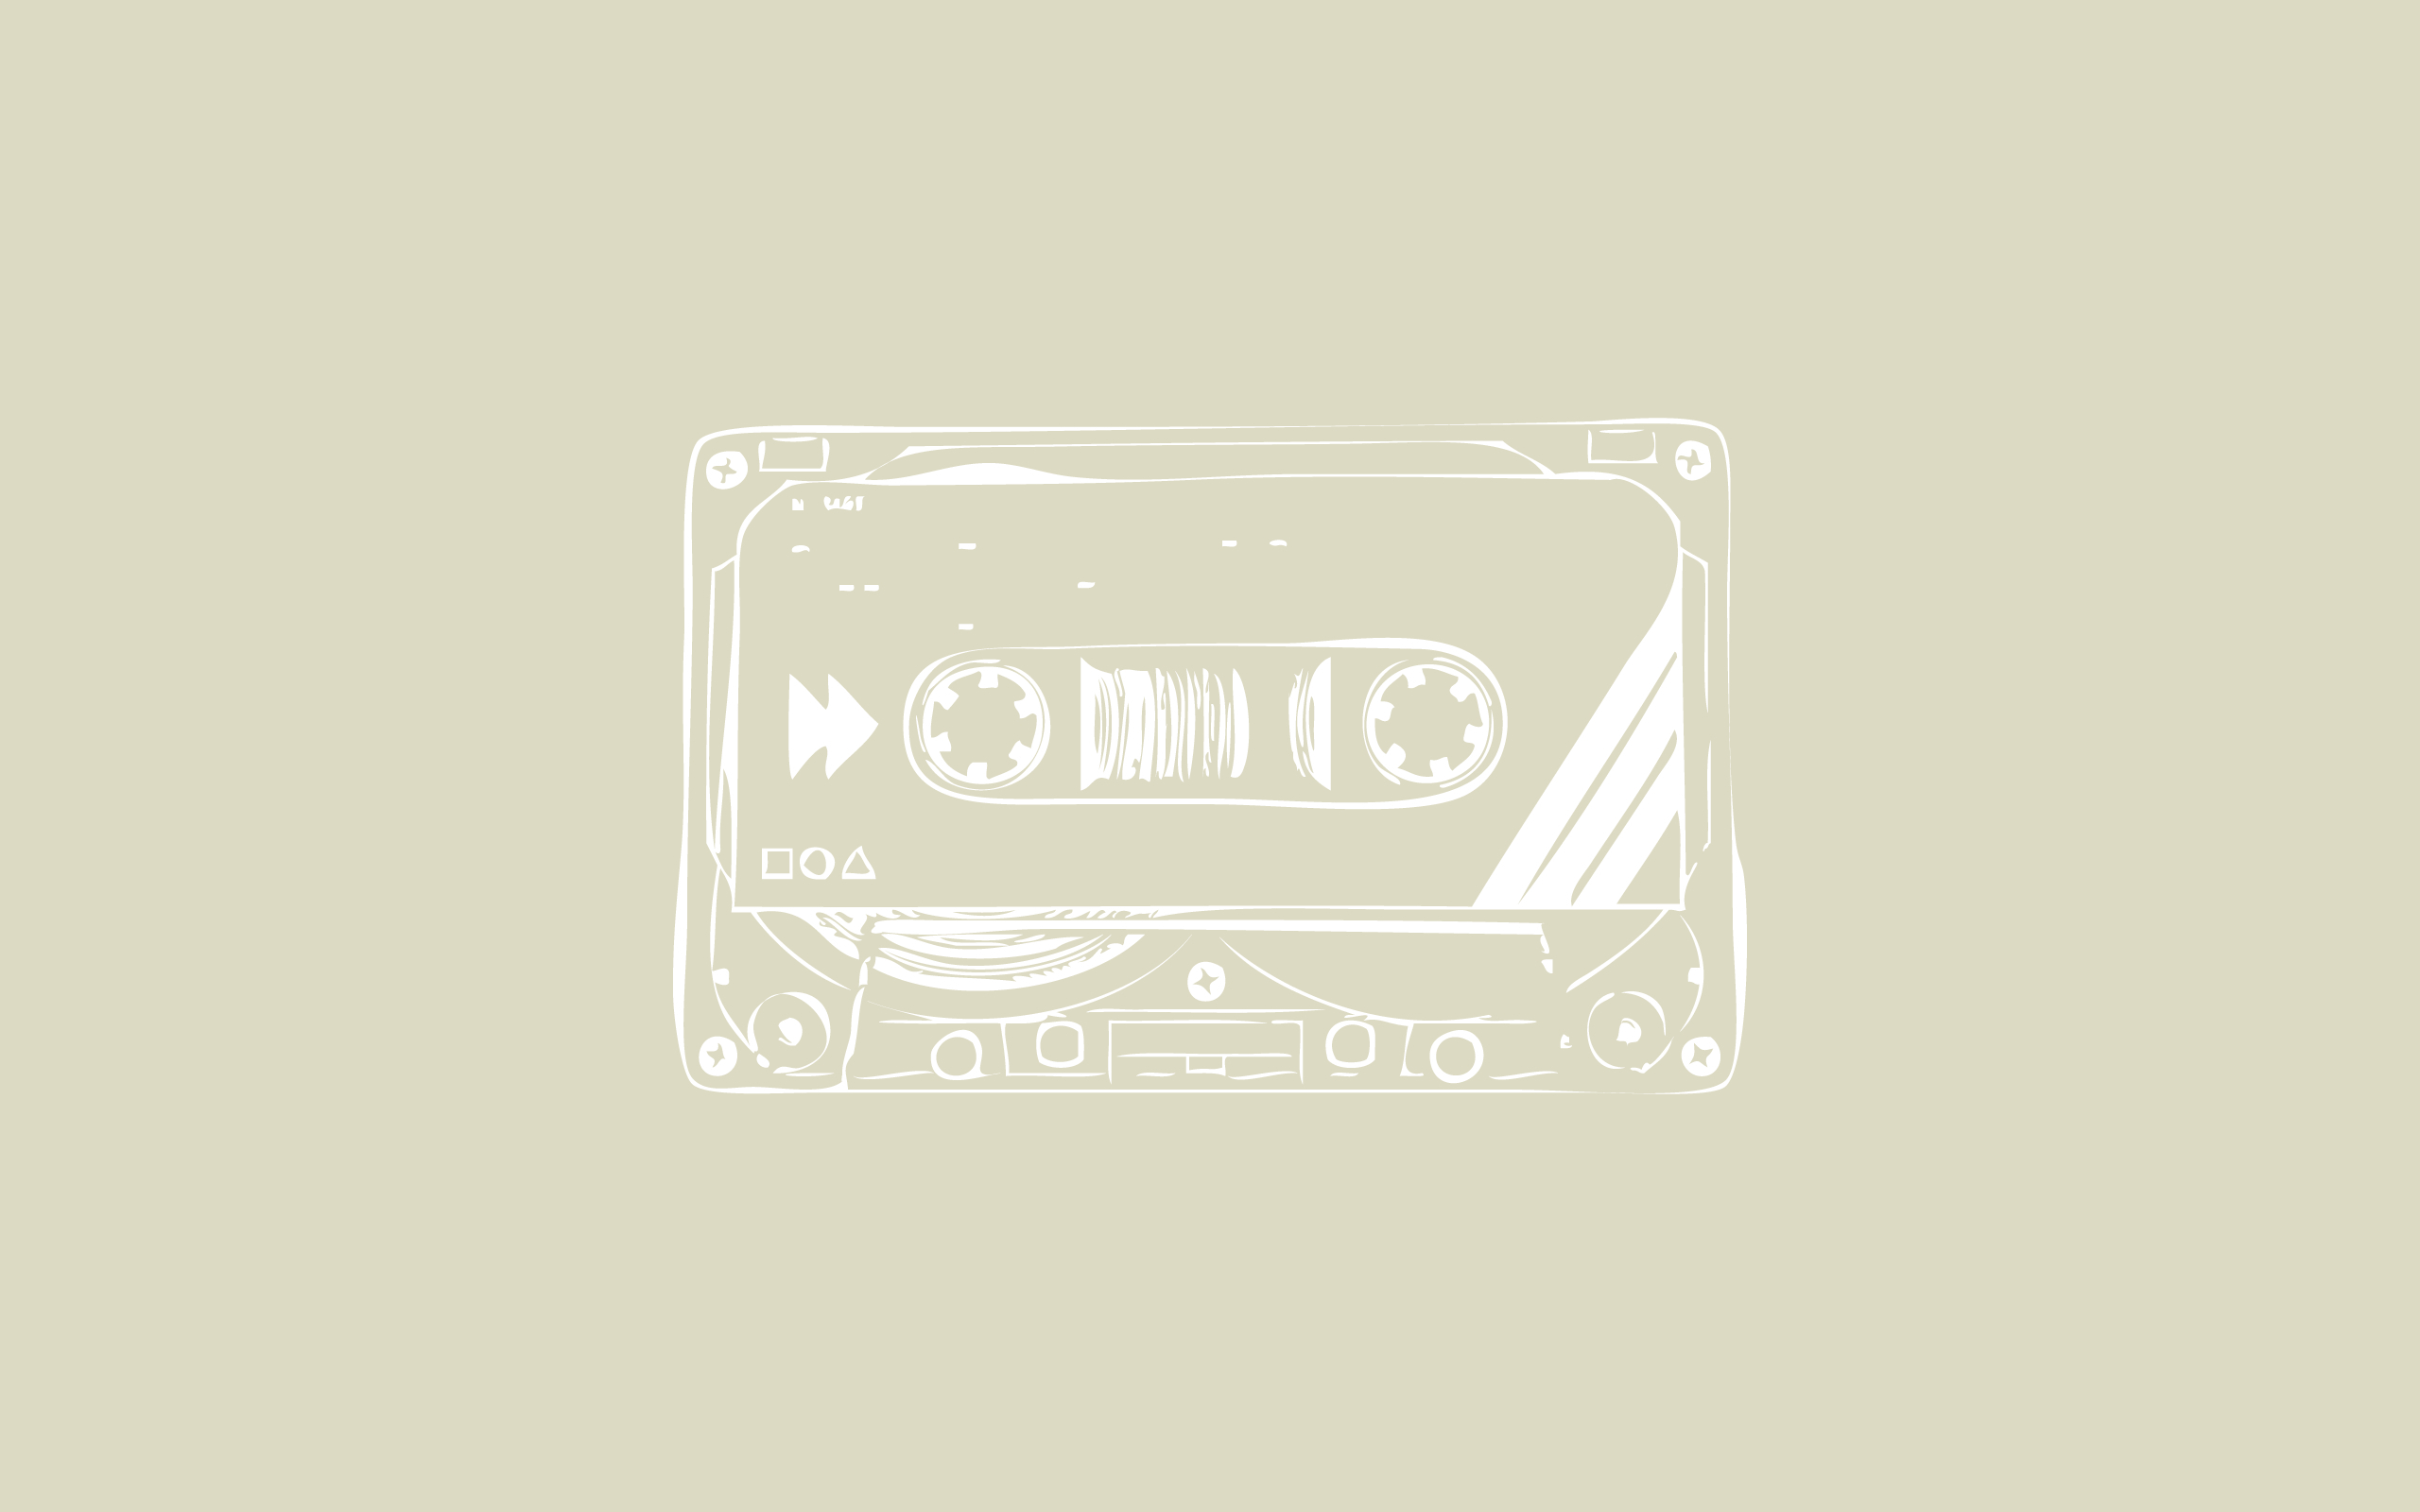 cassette Tape HD Wallpaper